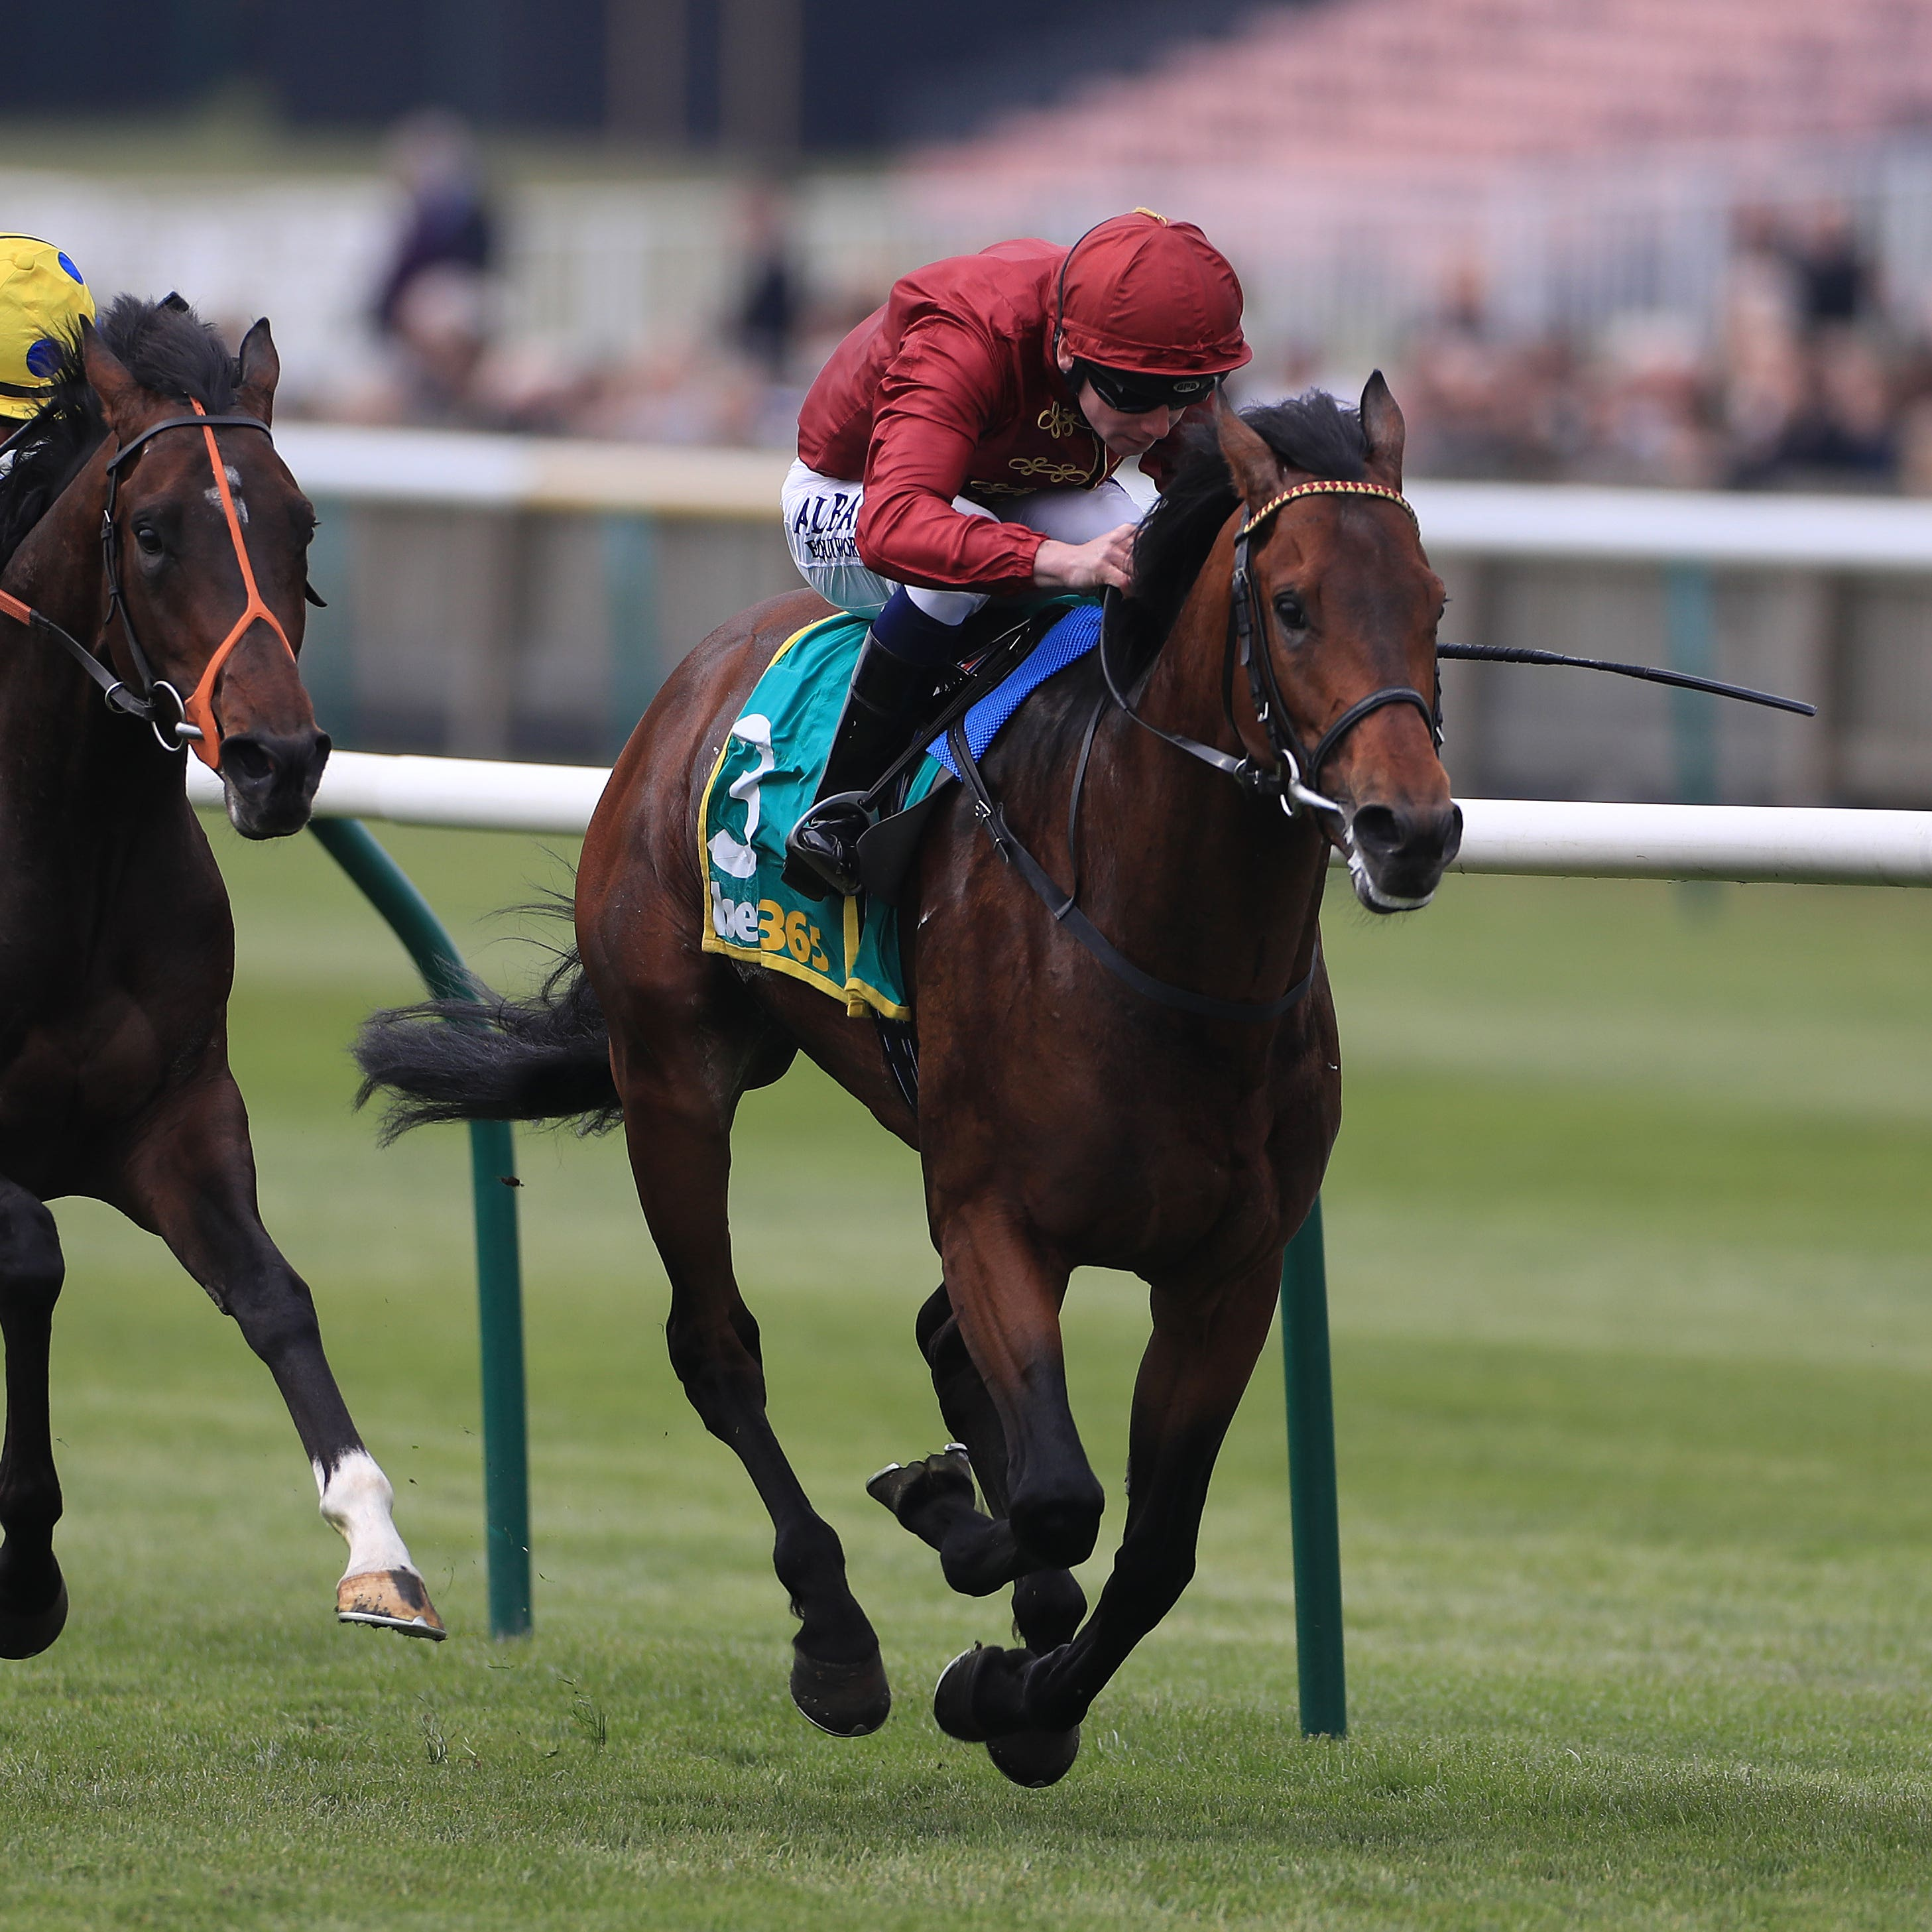 Kick On (right) won the Feilden Stakes at Newmarket